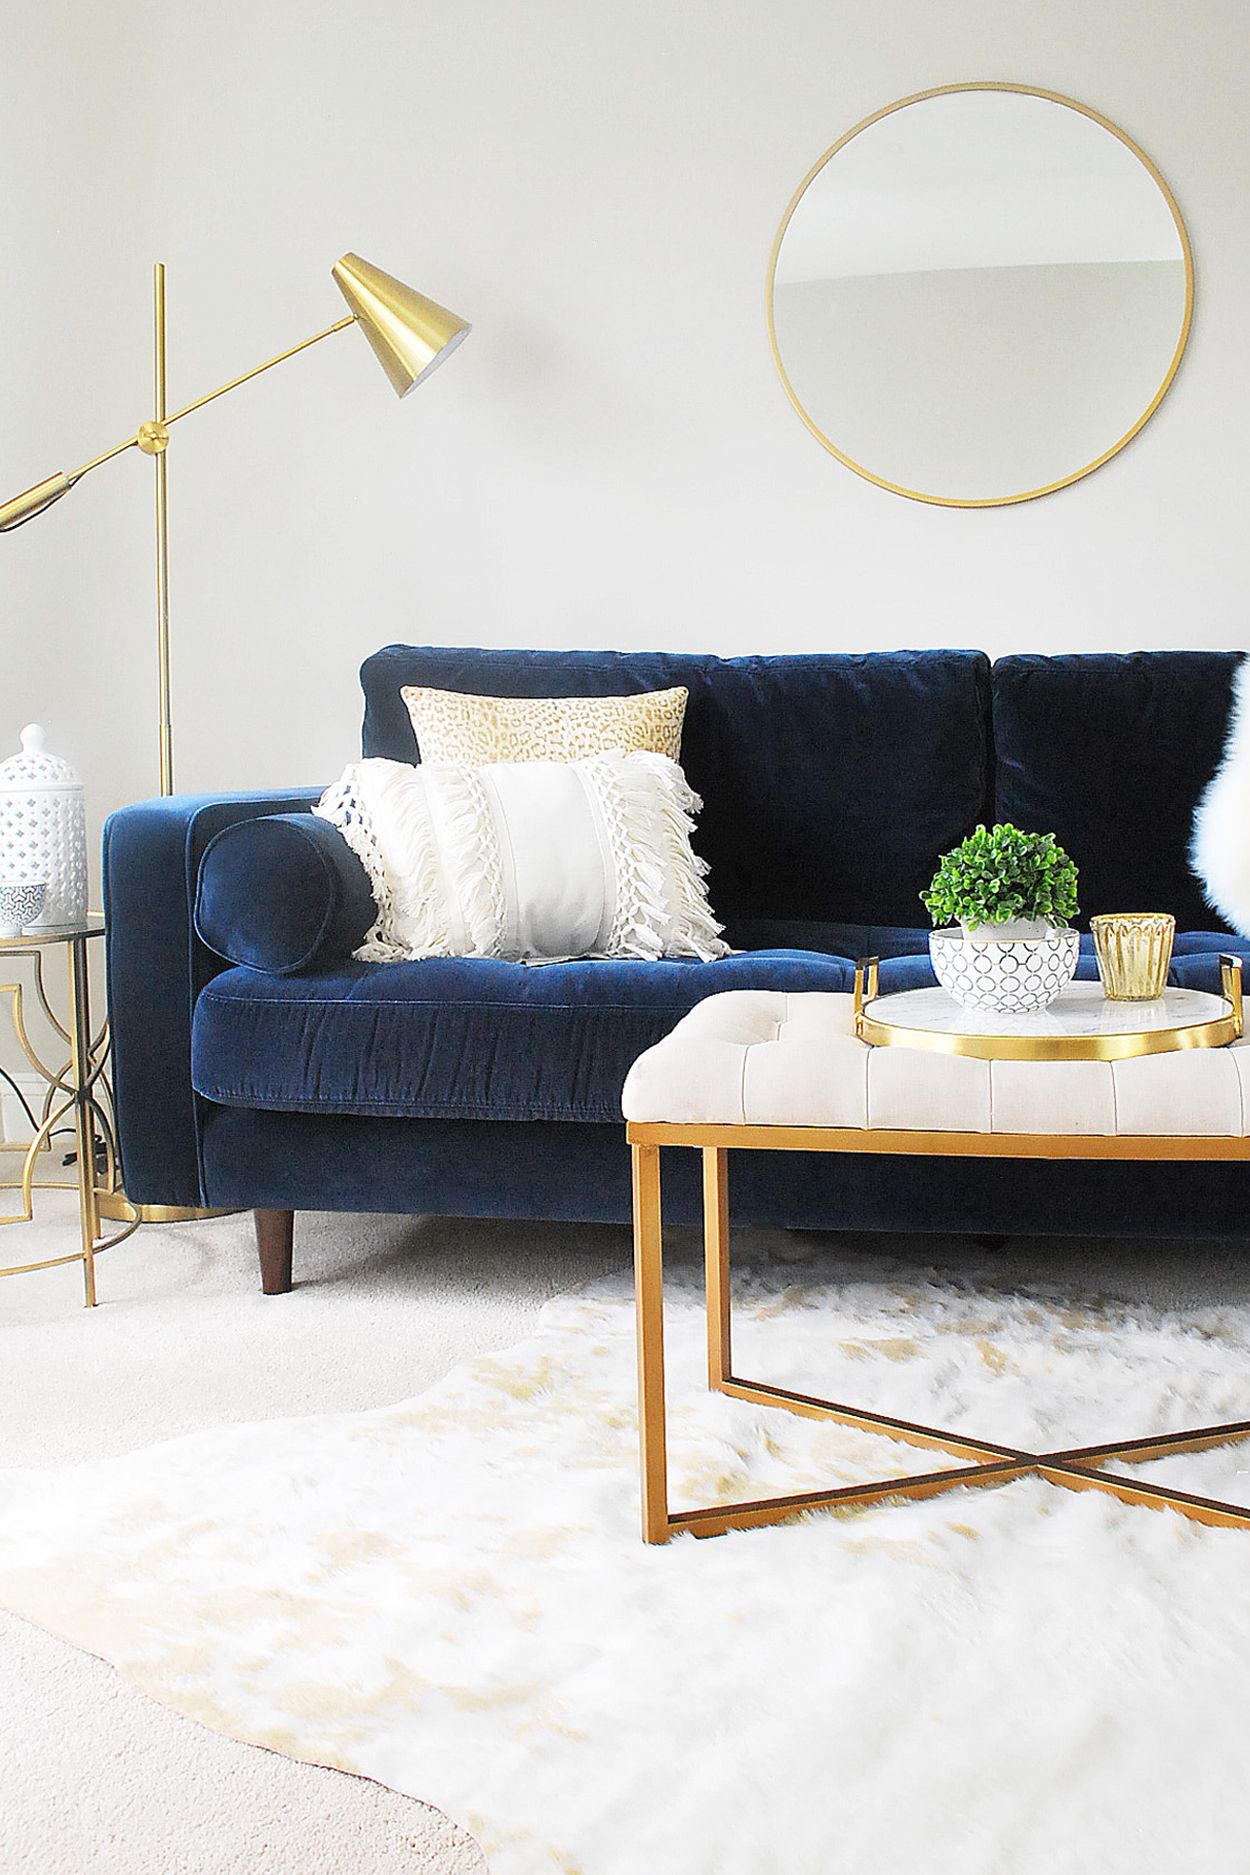 The Sven Sofa Is So Luxurious And It Was Simple To Shop For Article